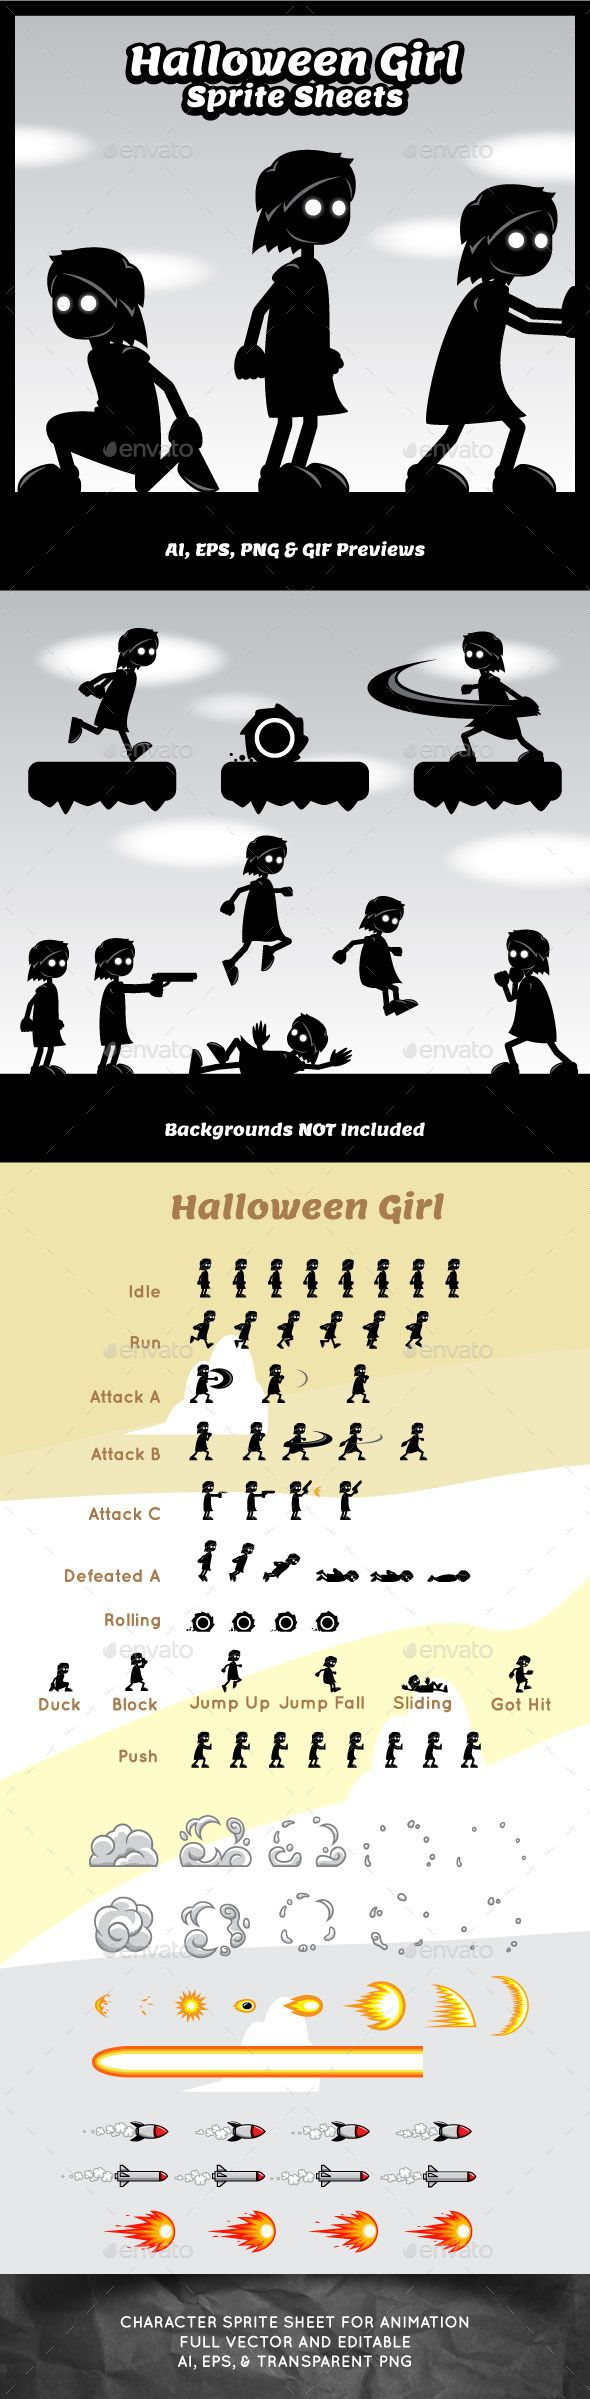 Halloween Girl Game Character Sprite Sheets Download here: https://graphicriver.net/item/halloween-girl-game-character-sprite-sheets/10762933?ref=KlitVogli